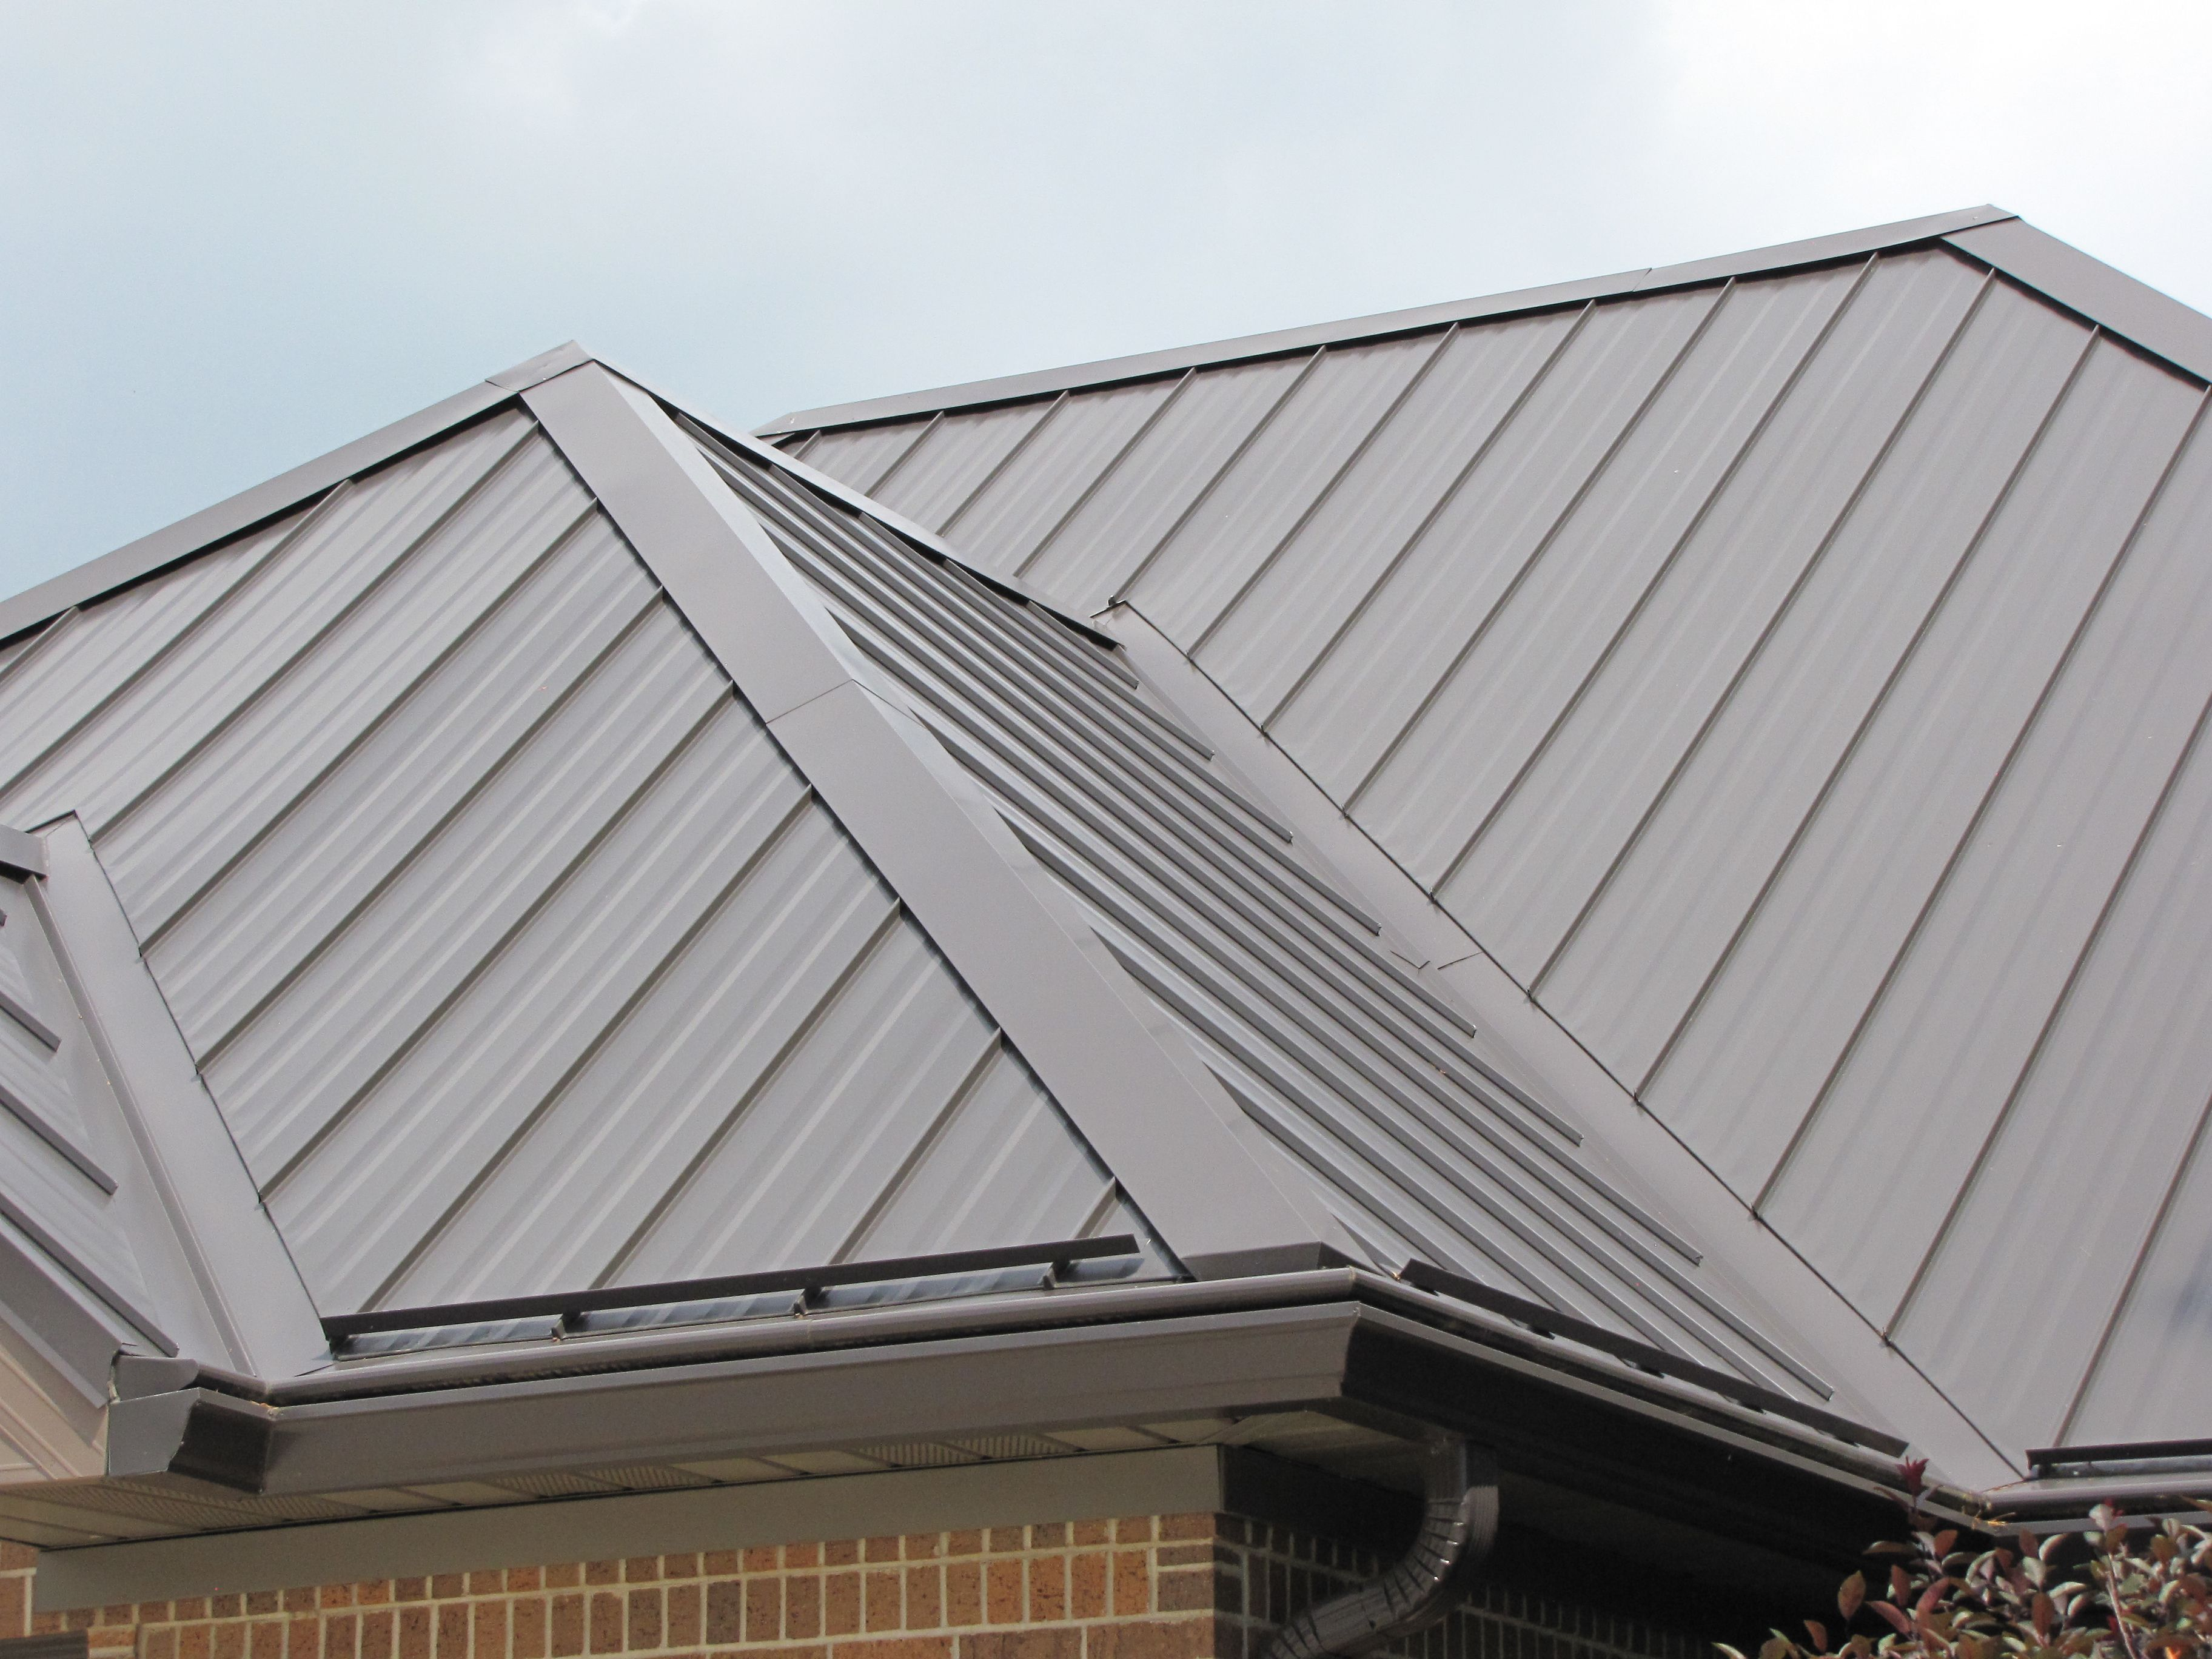 Standing Seam Hip Roof Google Search Roofing Roof Architecture Metal Roofing Prices